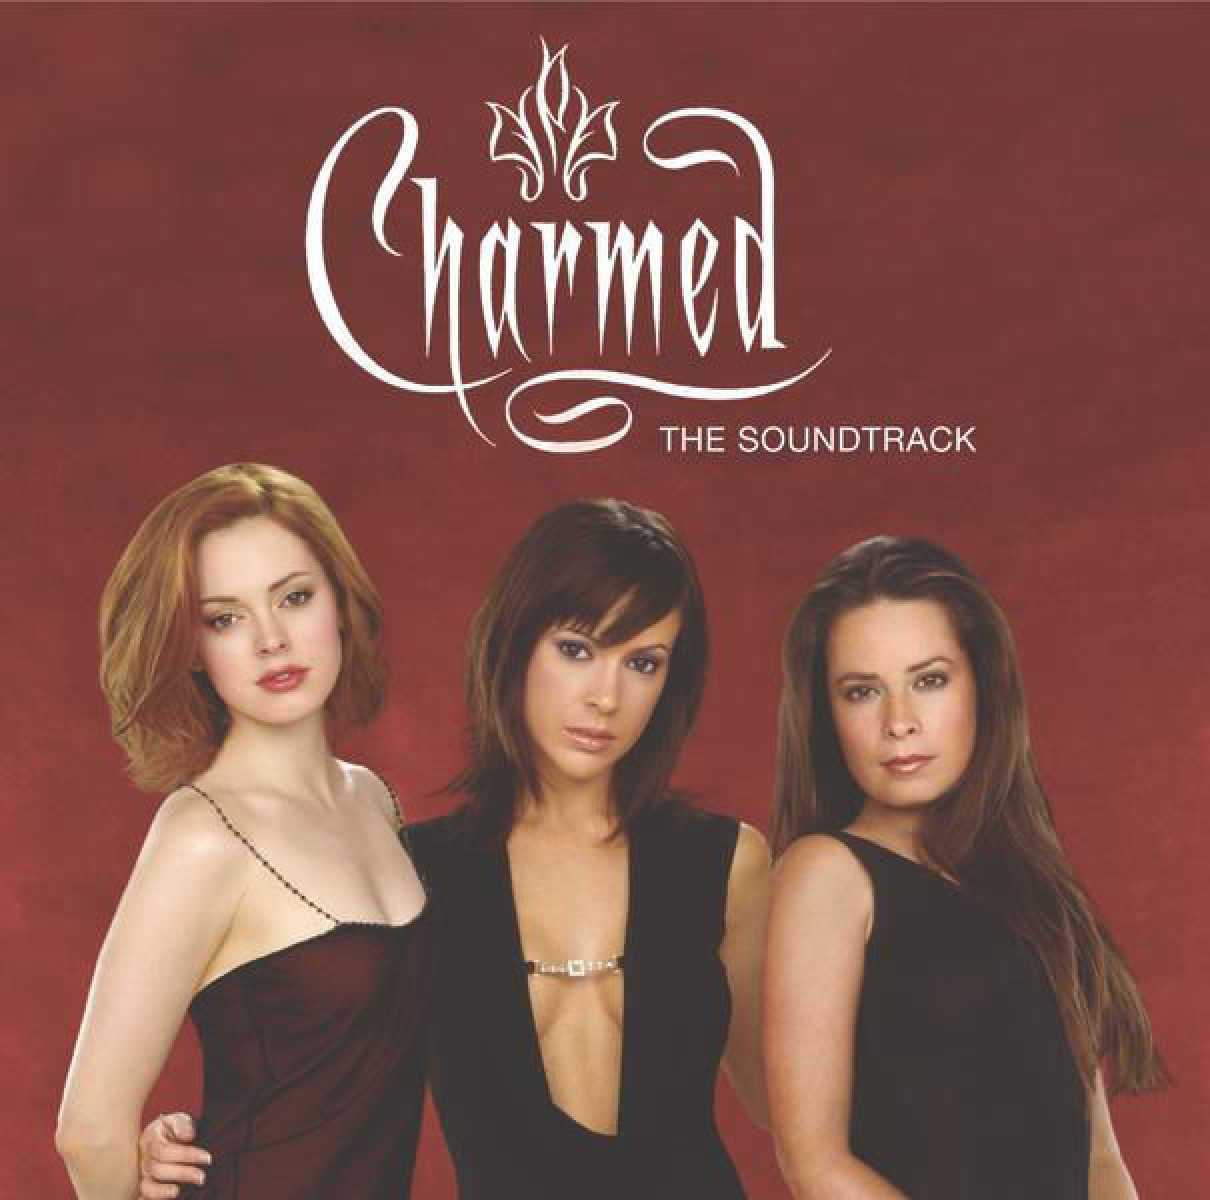 Charmed (The Soundtrack) CD - 82876521302